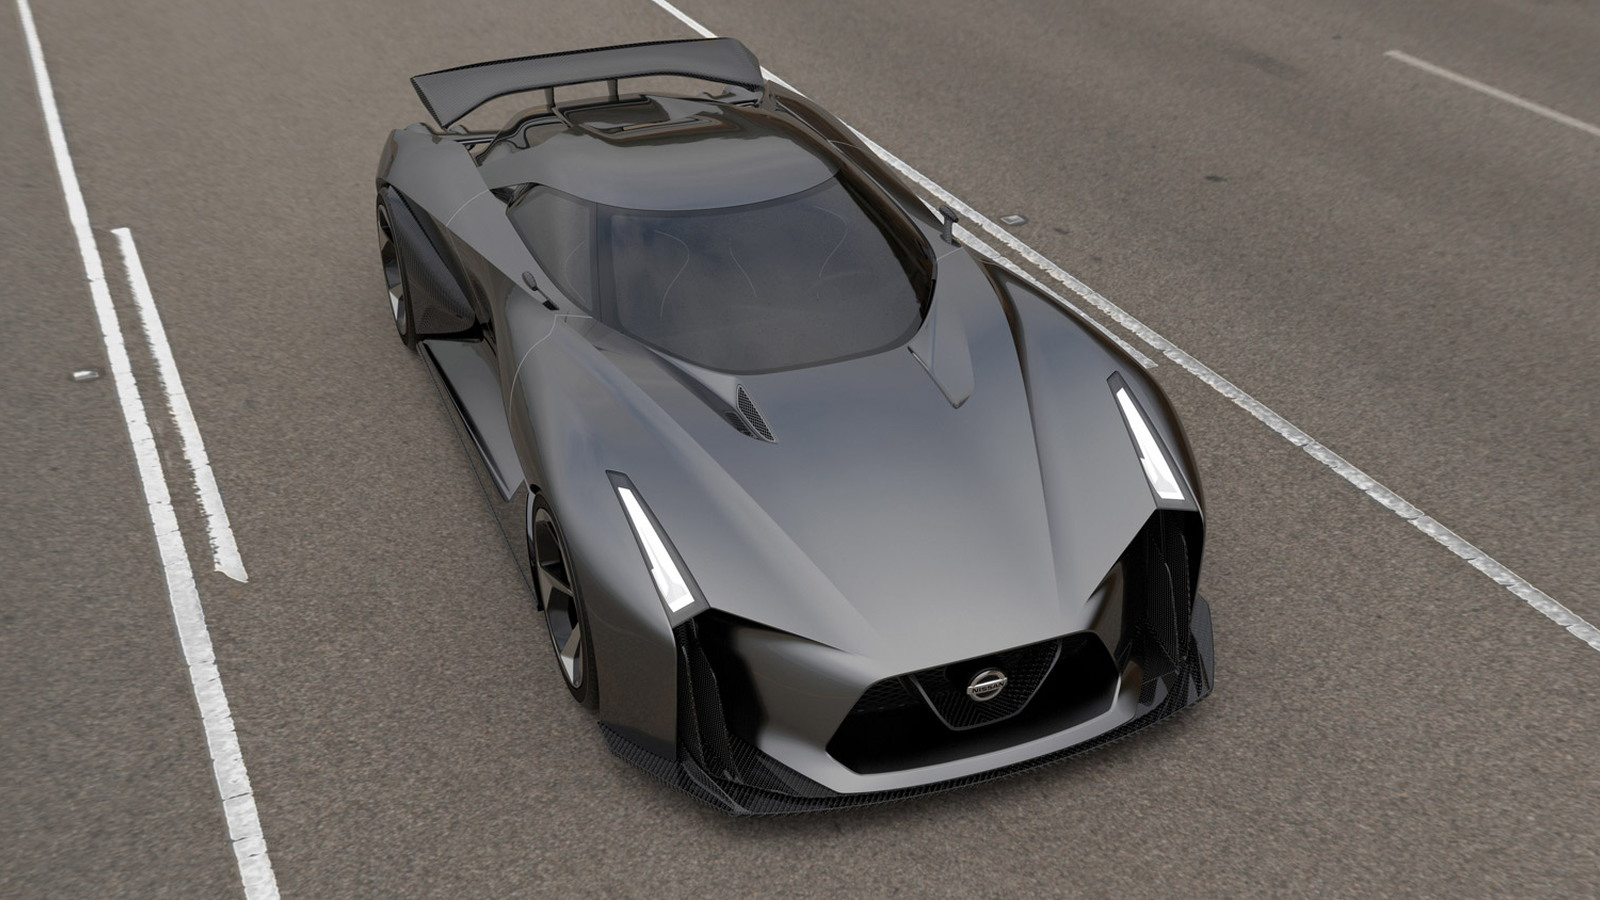 Nissan Concept 2020 Vision Gran Turismo Revealed Likely Hints At